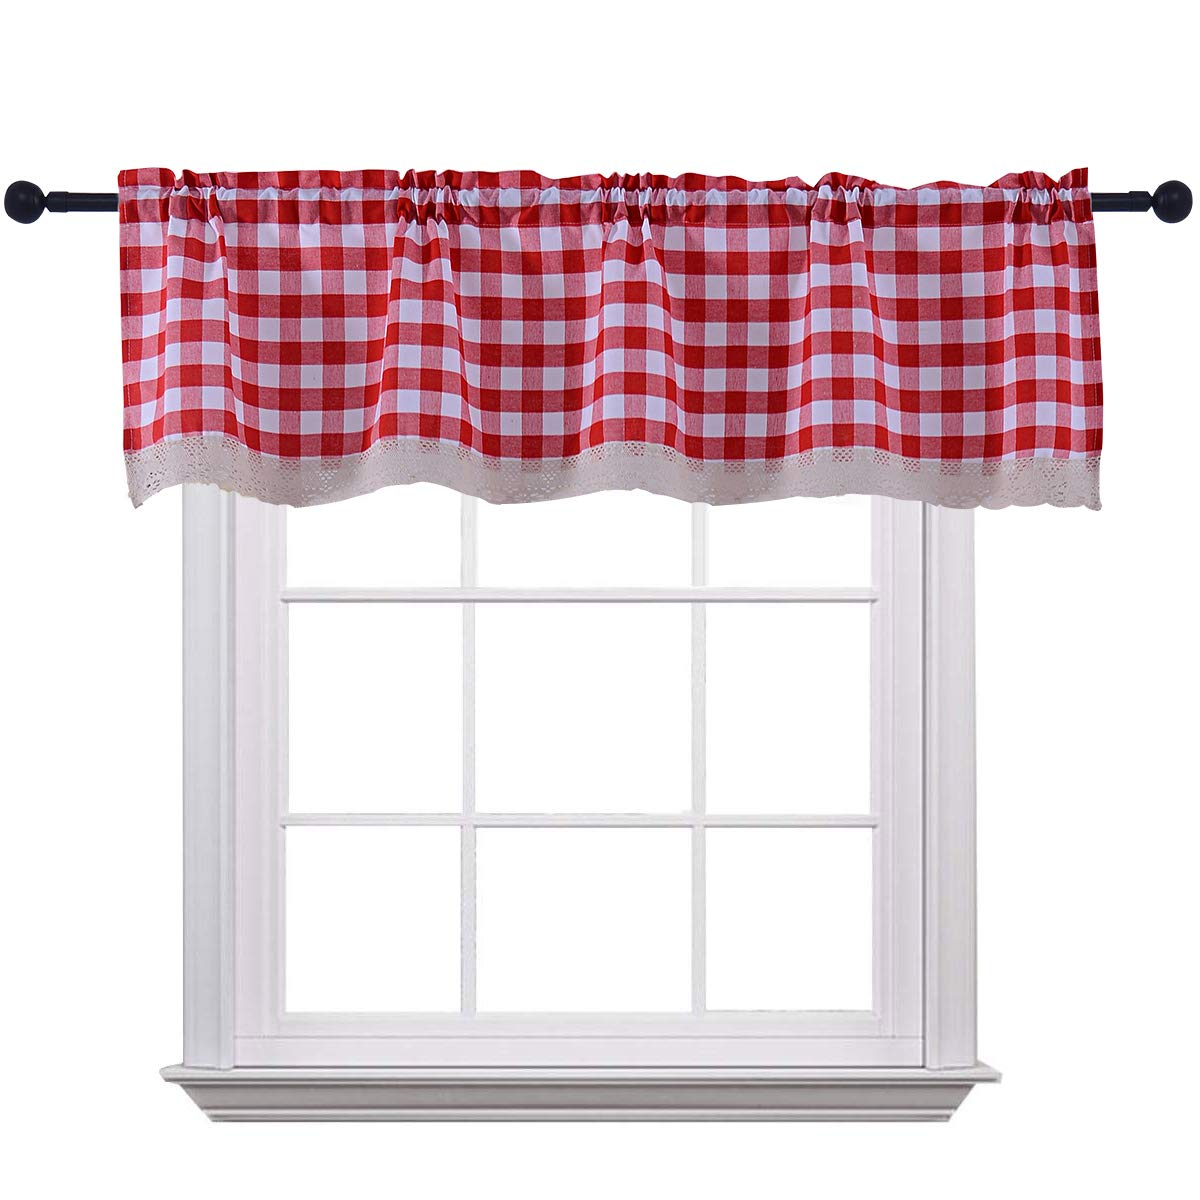 Curtain Valances for Windows Gingham Cotton Blend Window Curtains for Kitchen Living Dining Room 58 x 15 inches Rod Pocket 1 Plaid Valance Red